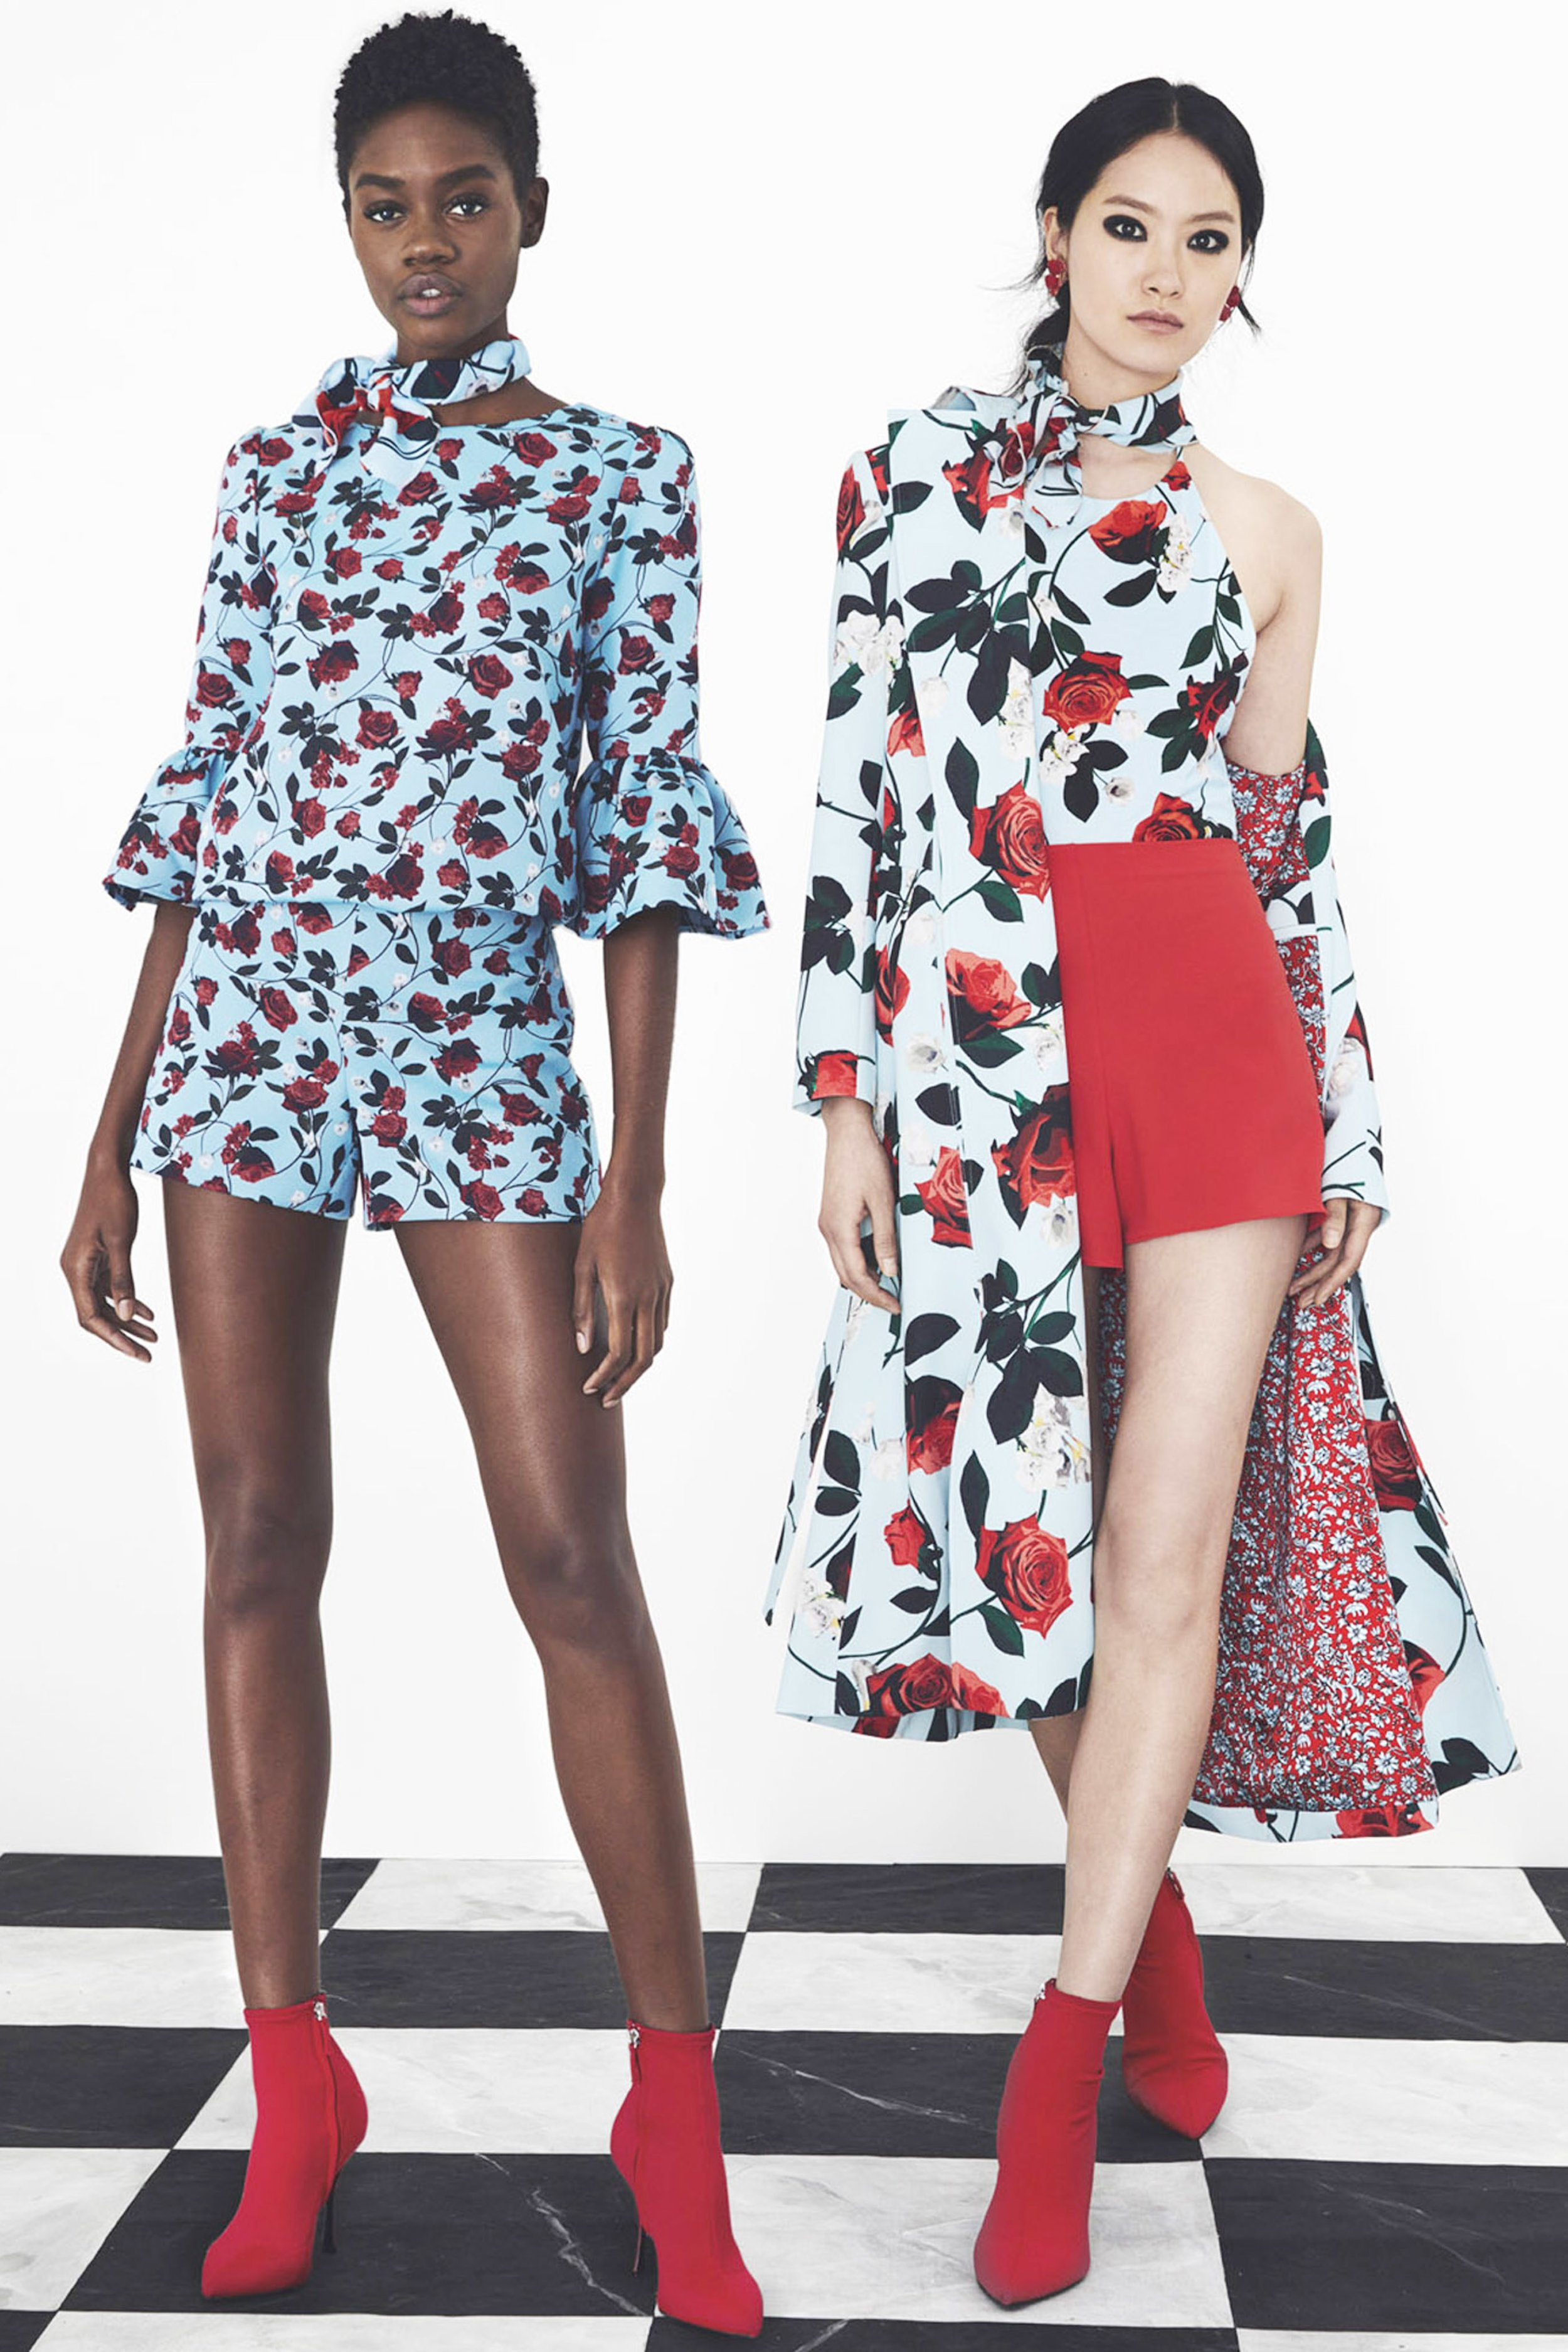 00022-alice-and-olivia-spring-2019-ready-to-wear.jpg